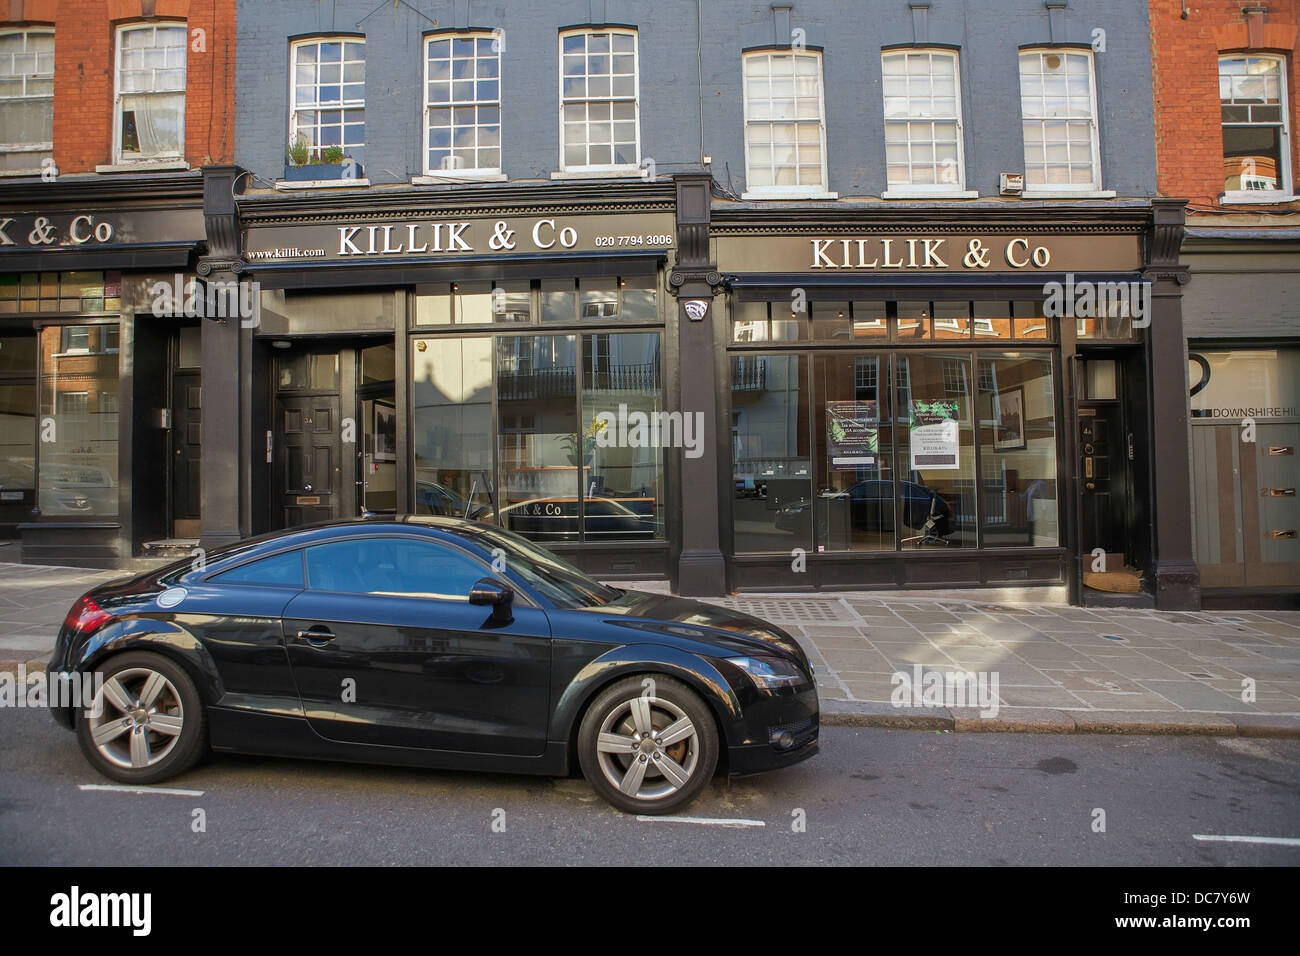 The Stockbrokers Kiillik & Co shop front in north London. - Stock Image